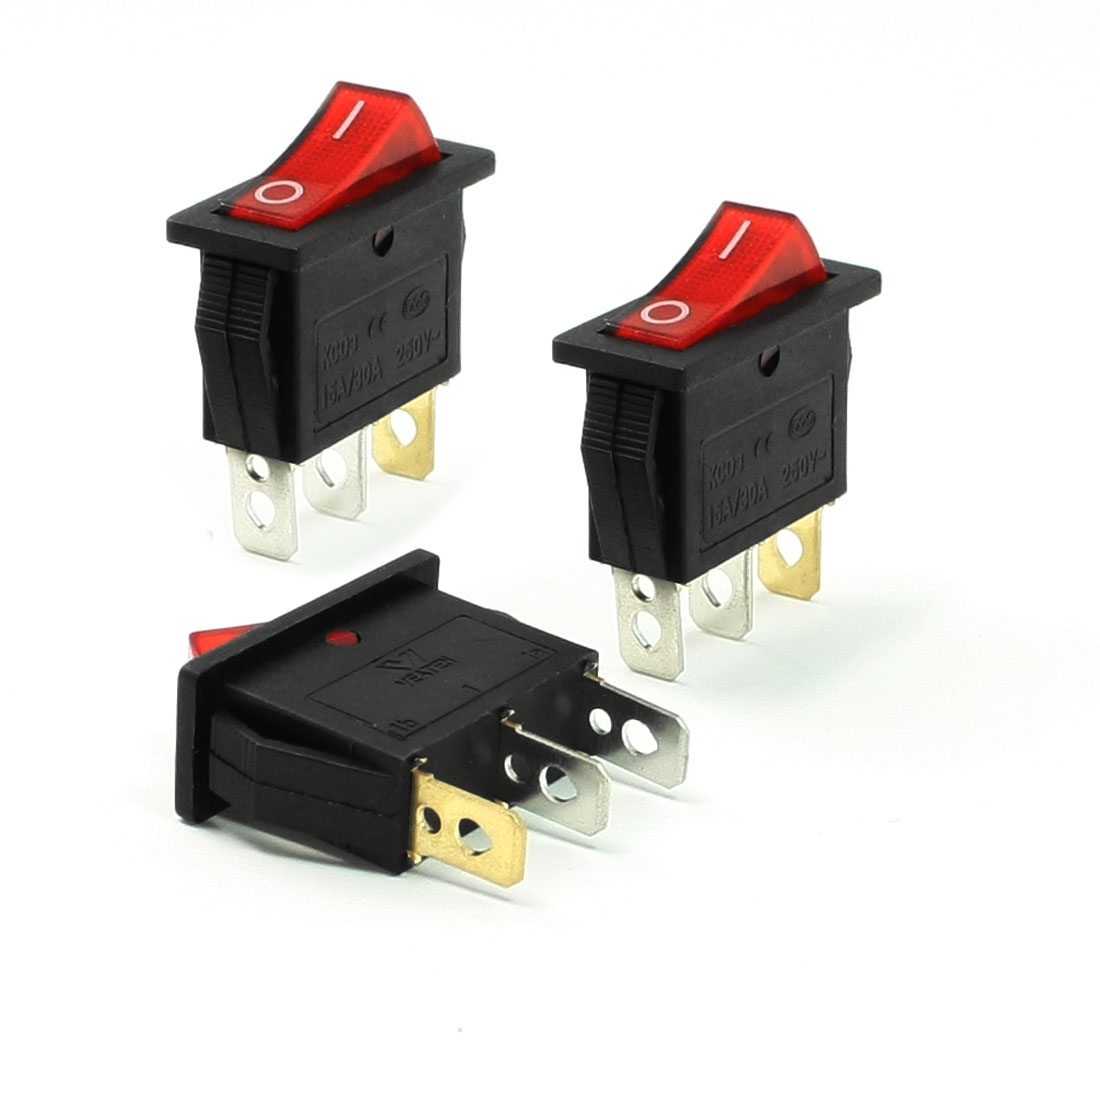 3 Pcs Panel Mounted Red Lamp 3 Pin 2 Position SPST Rocker Switch 15A/30A 250VAC